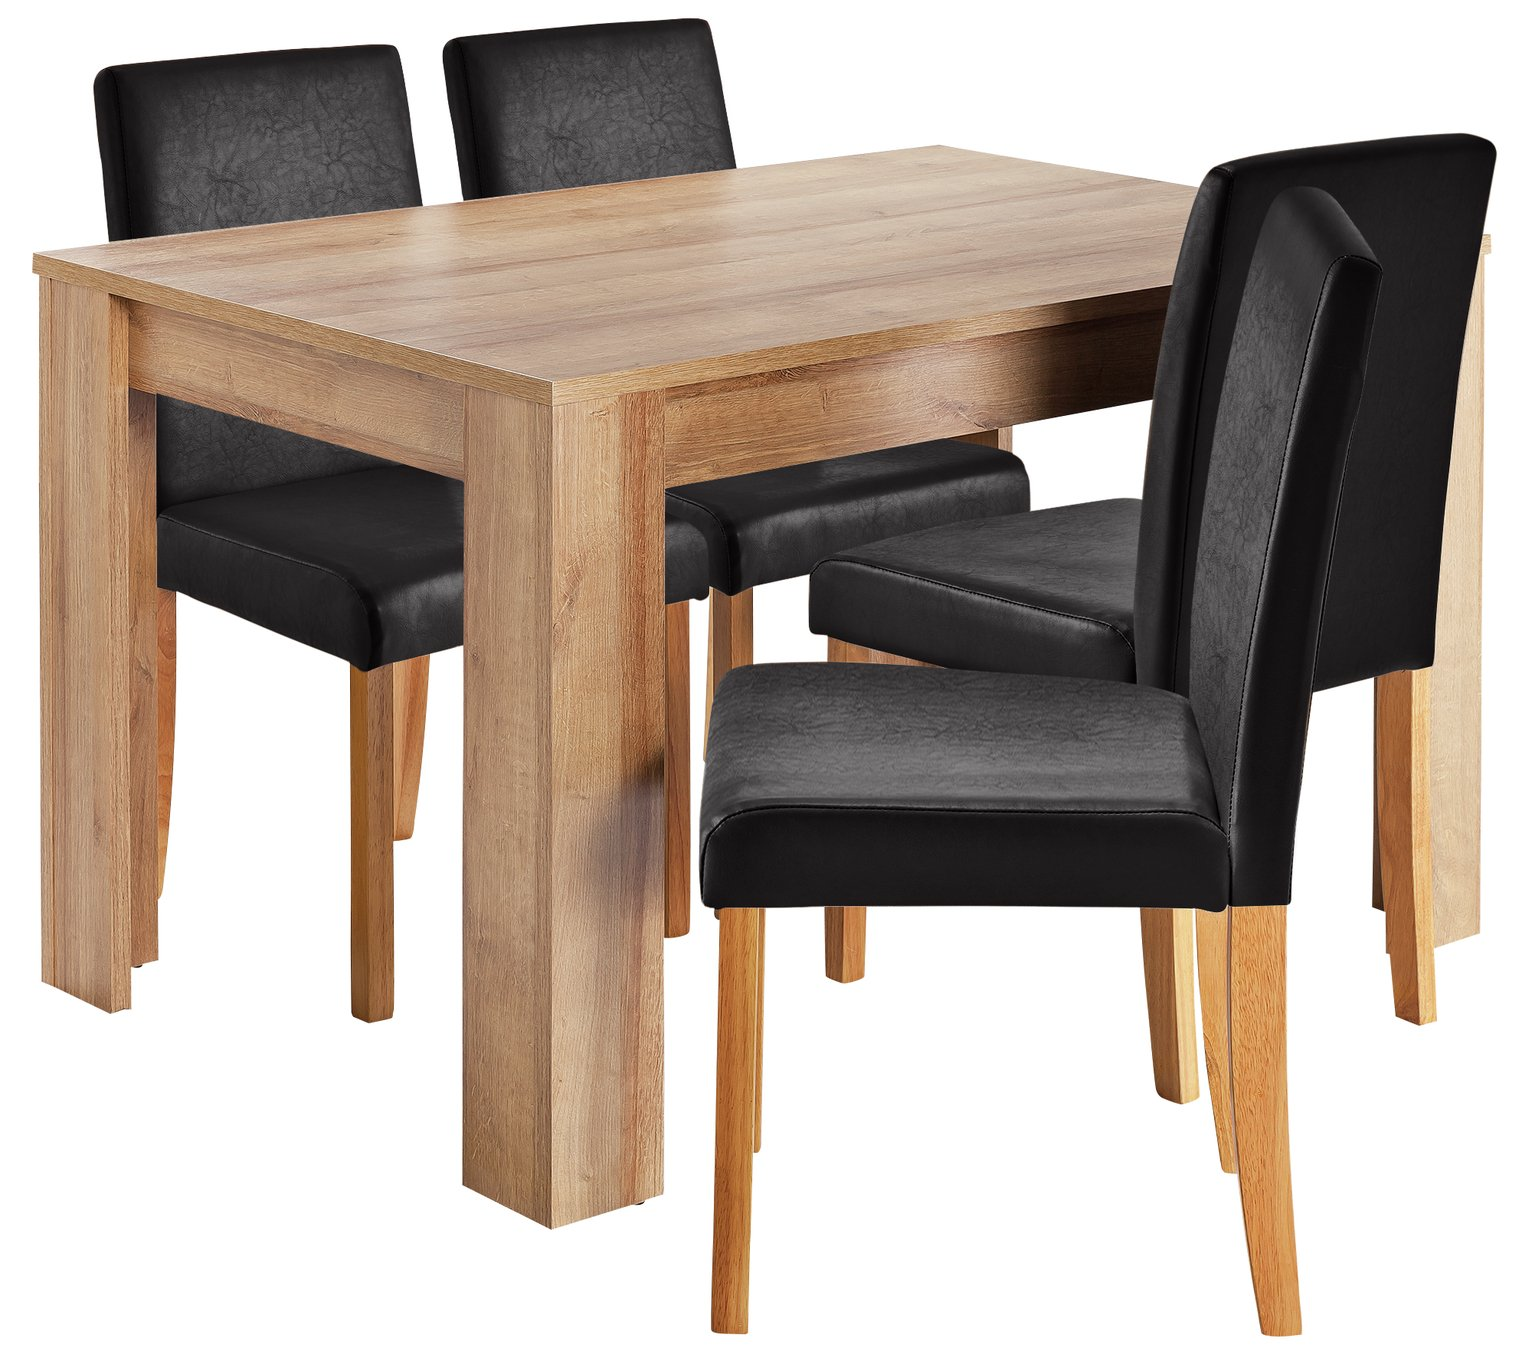 Image of HOME Miami Dining Table & 4 Chairs - Black